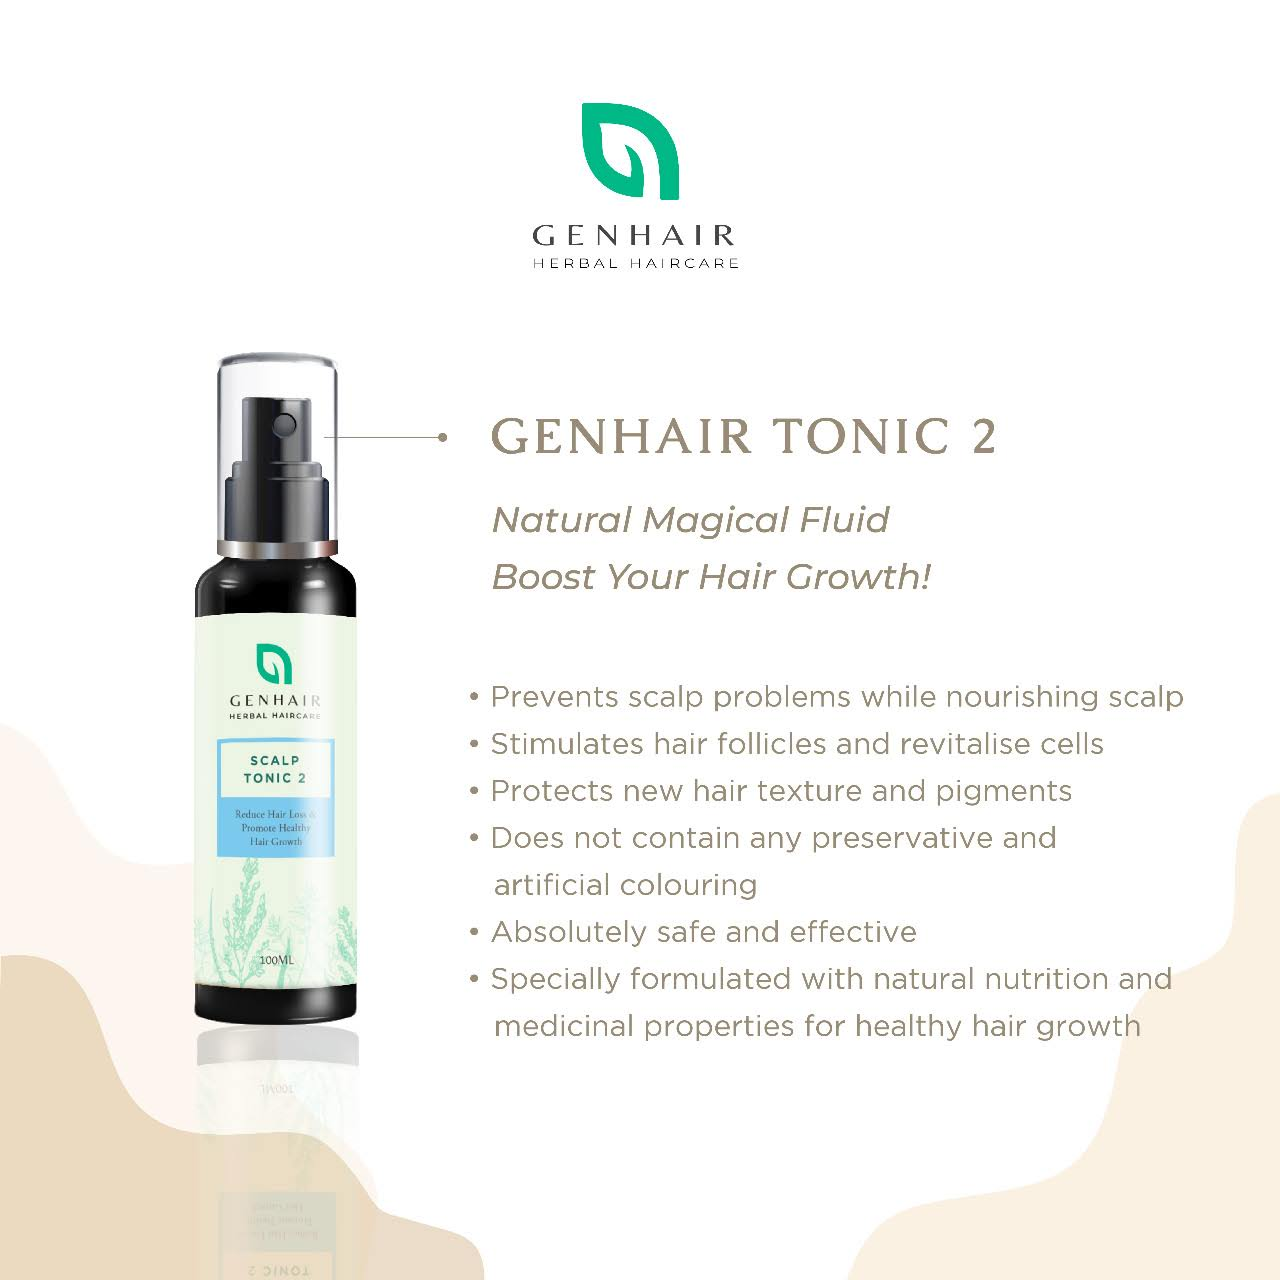 Genhair herbal tonic 2 hair growth booster